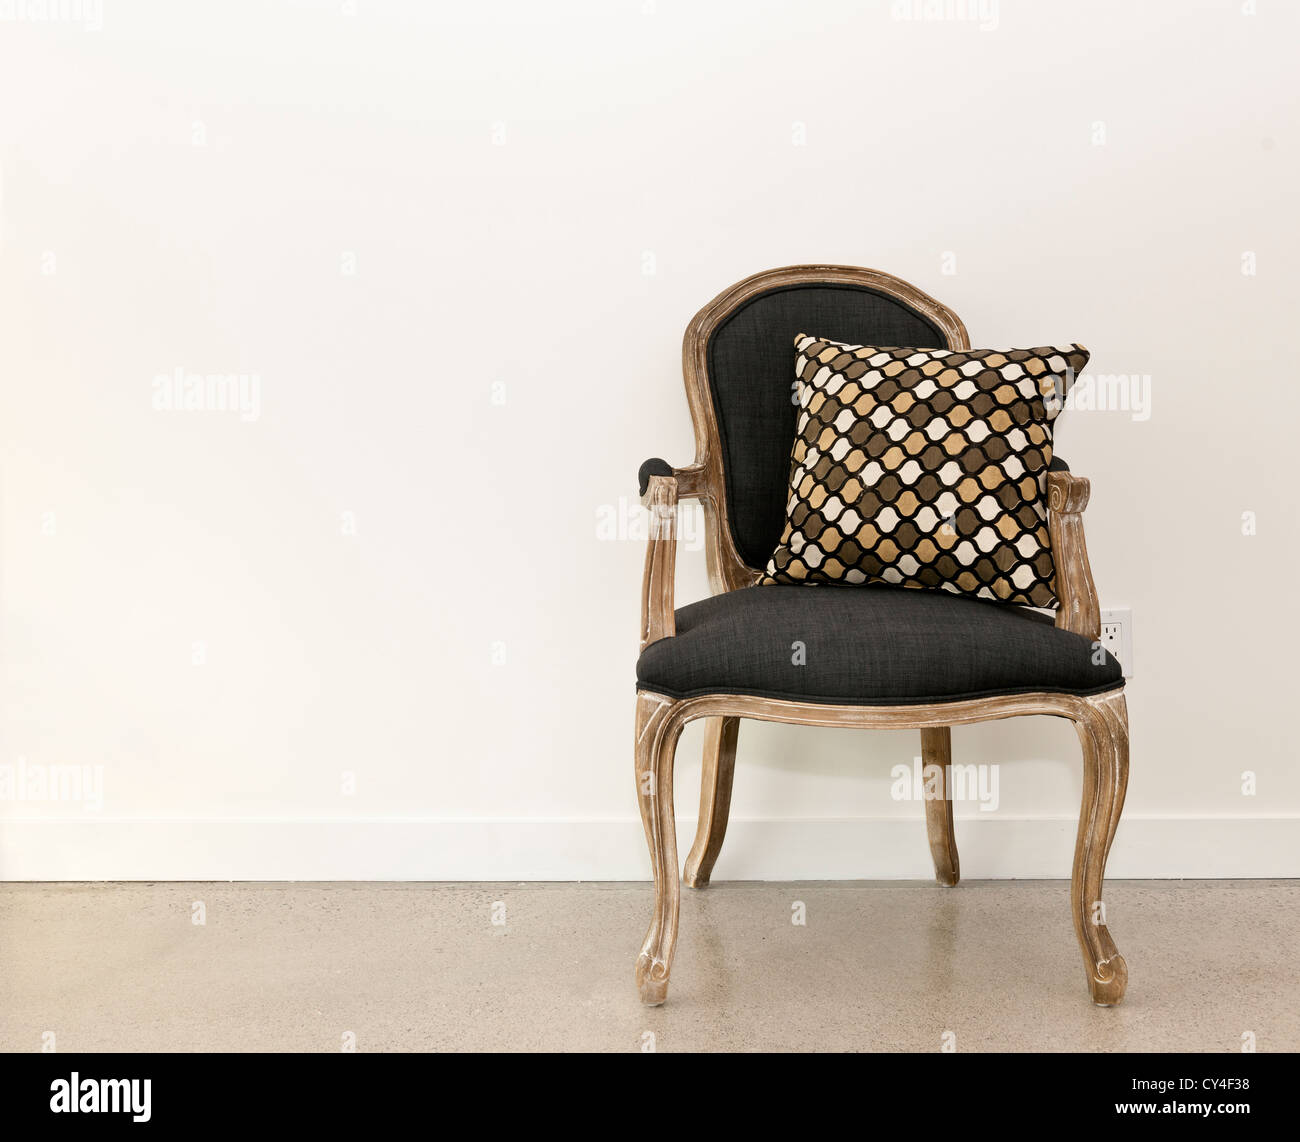 Antique armchair furniture with cushion against white wall - Stock Image